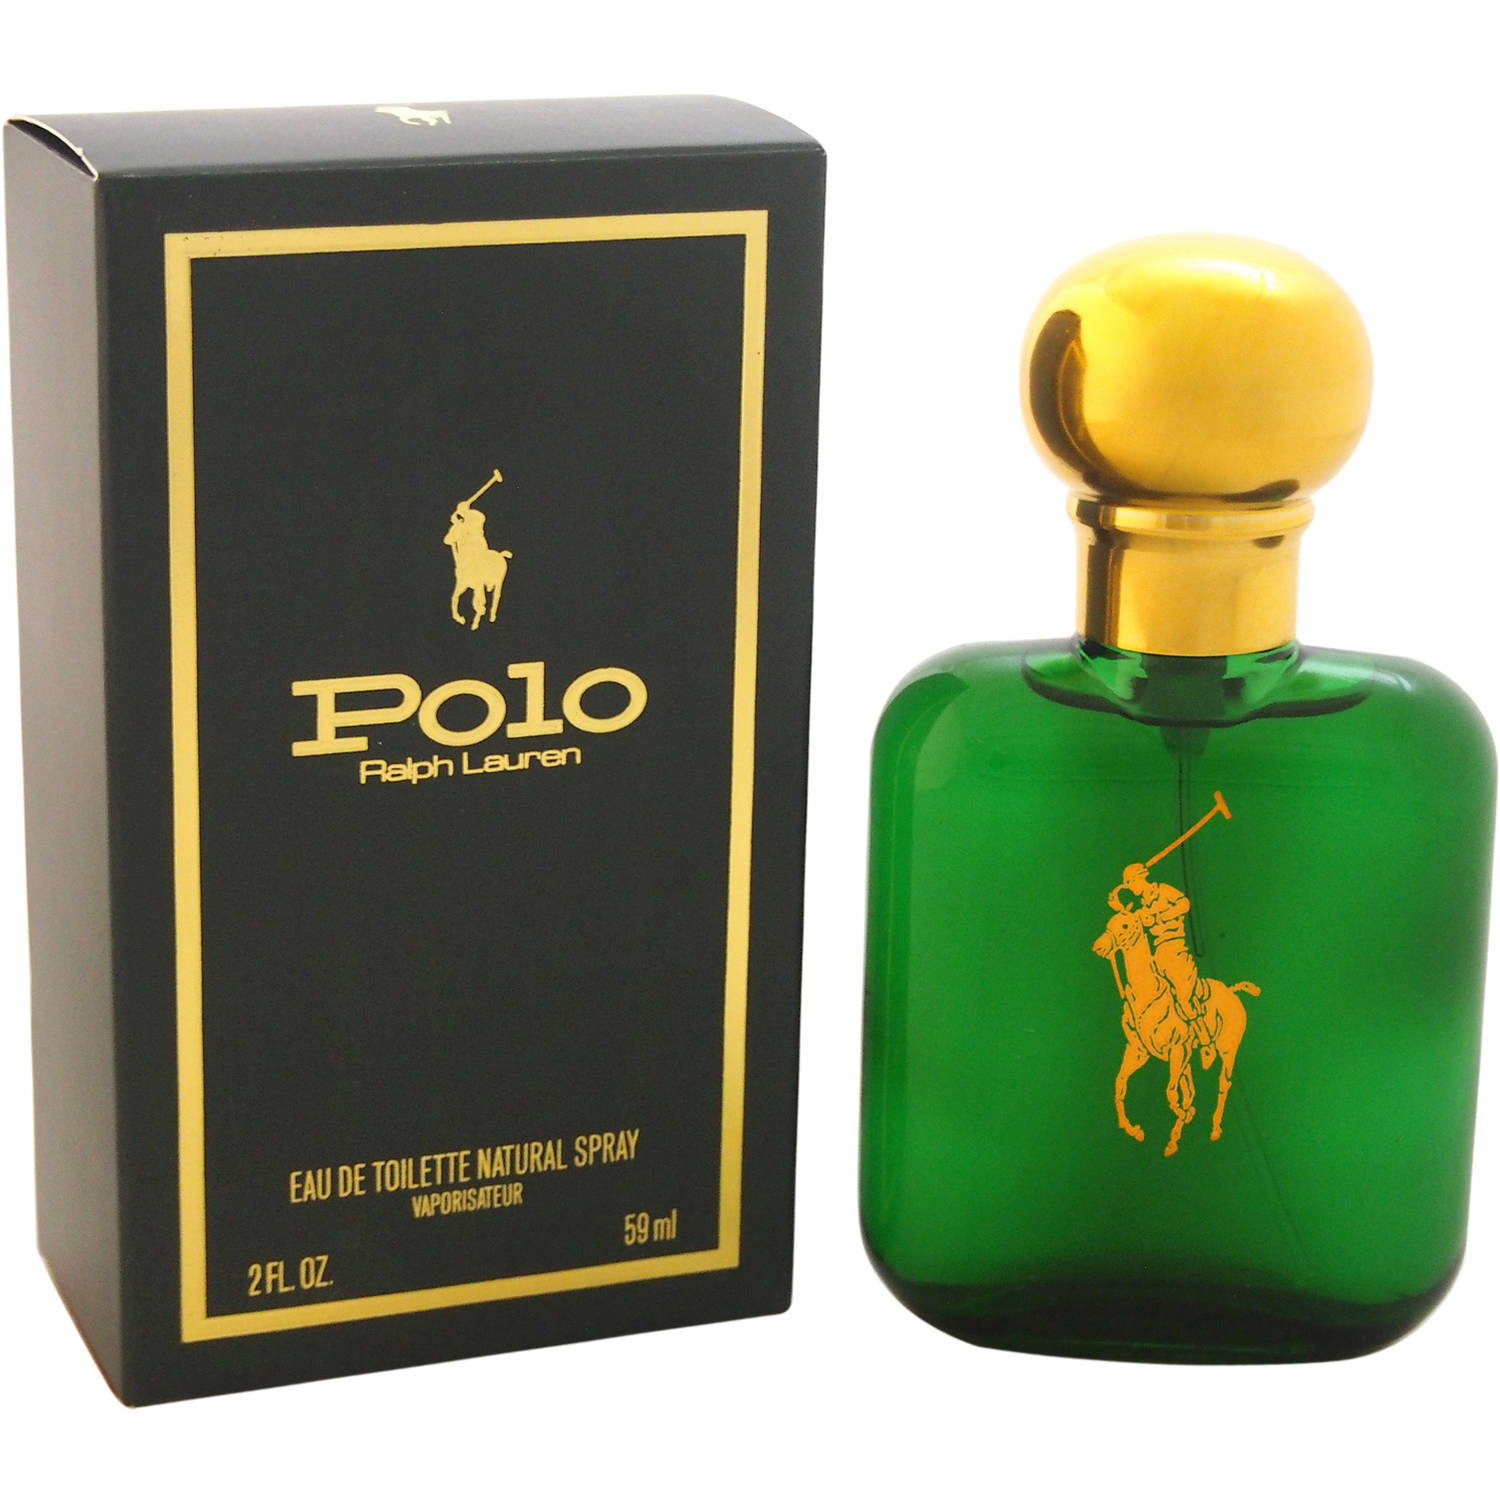 Ralph Lauren Polo EDT Spray, 2 oz